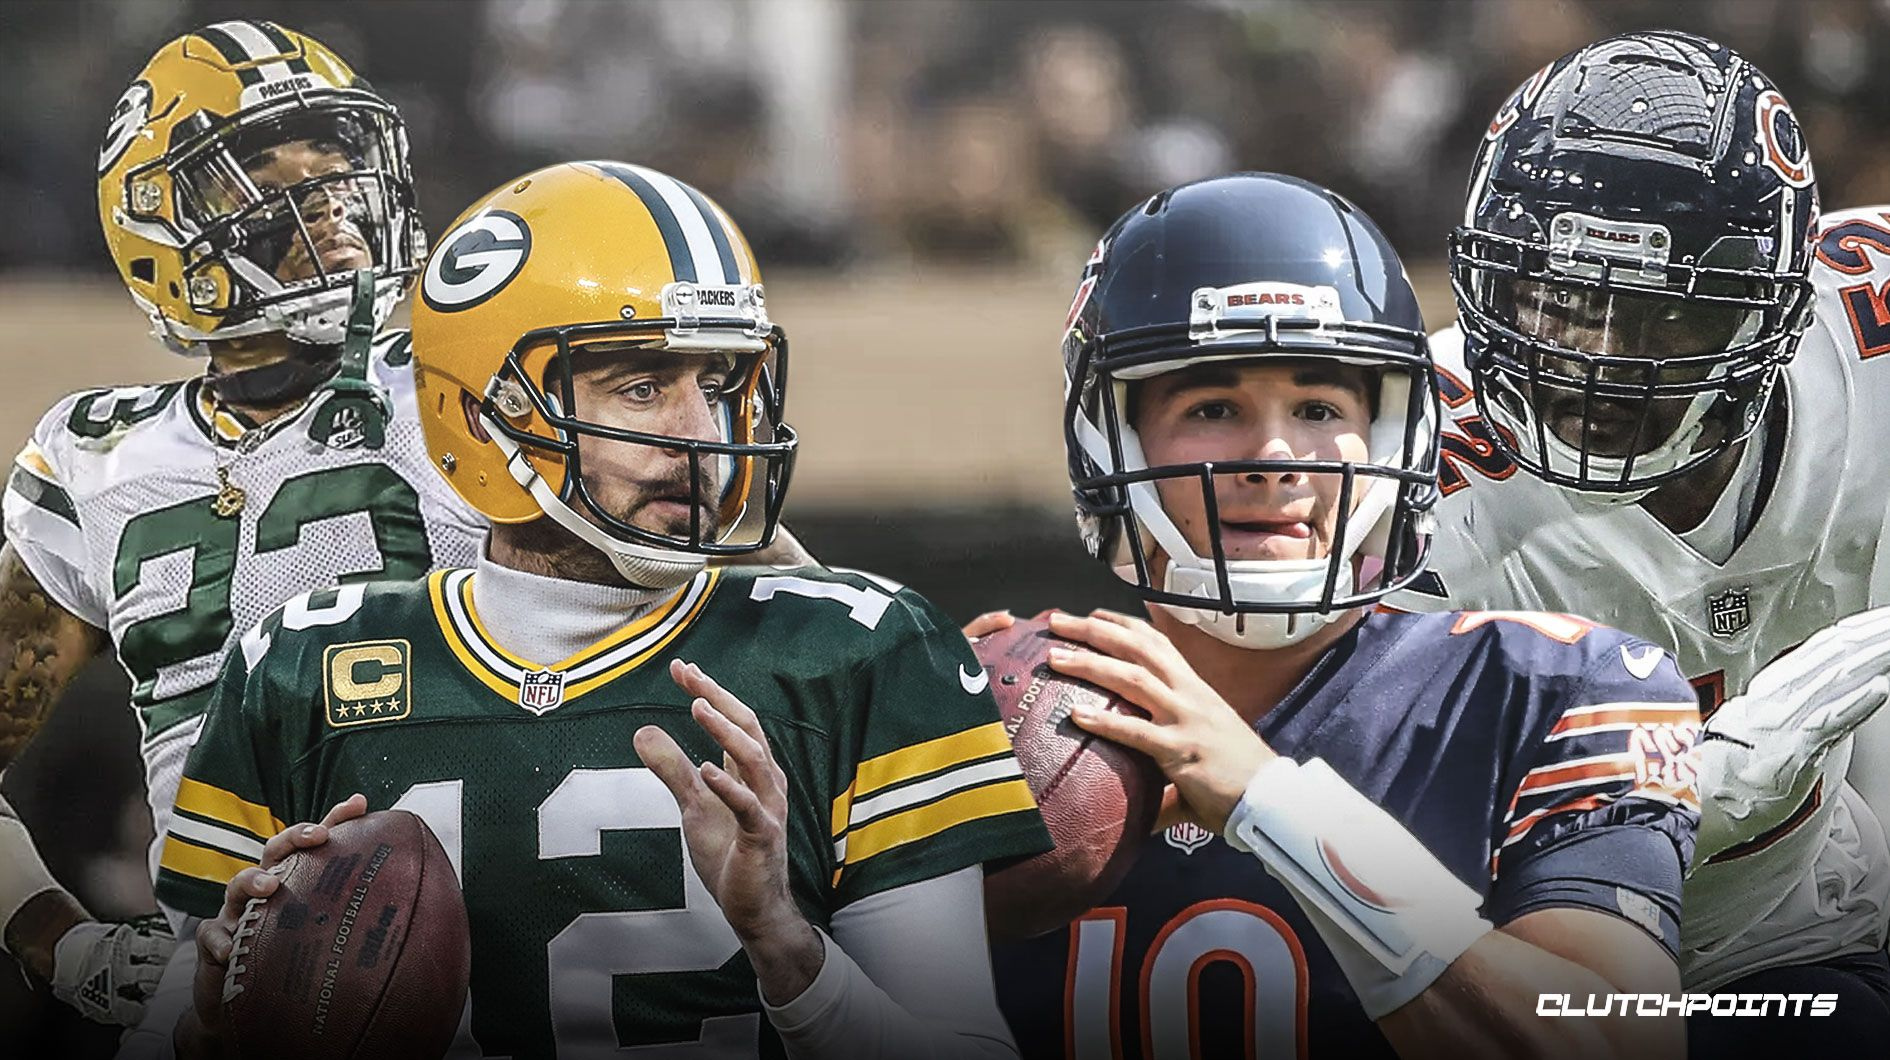 Chicago Bears vs Green Bay Packers Live Stream NFL Week 1